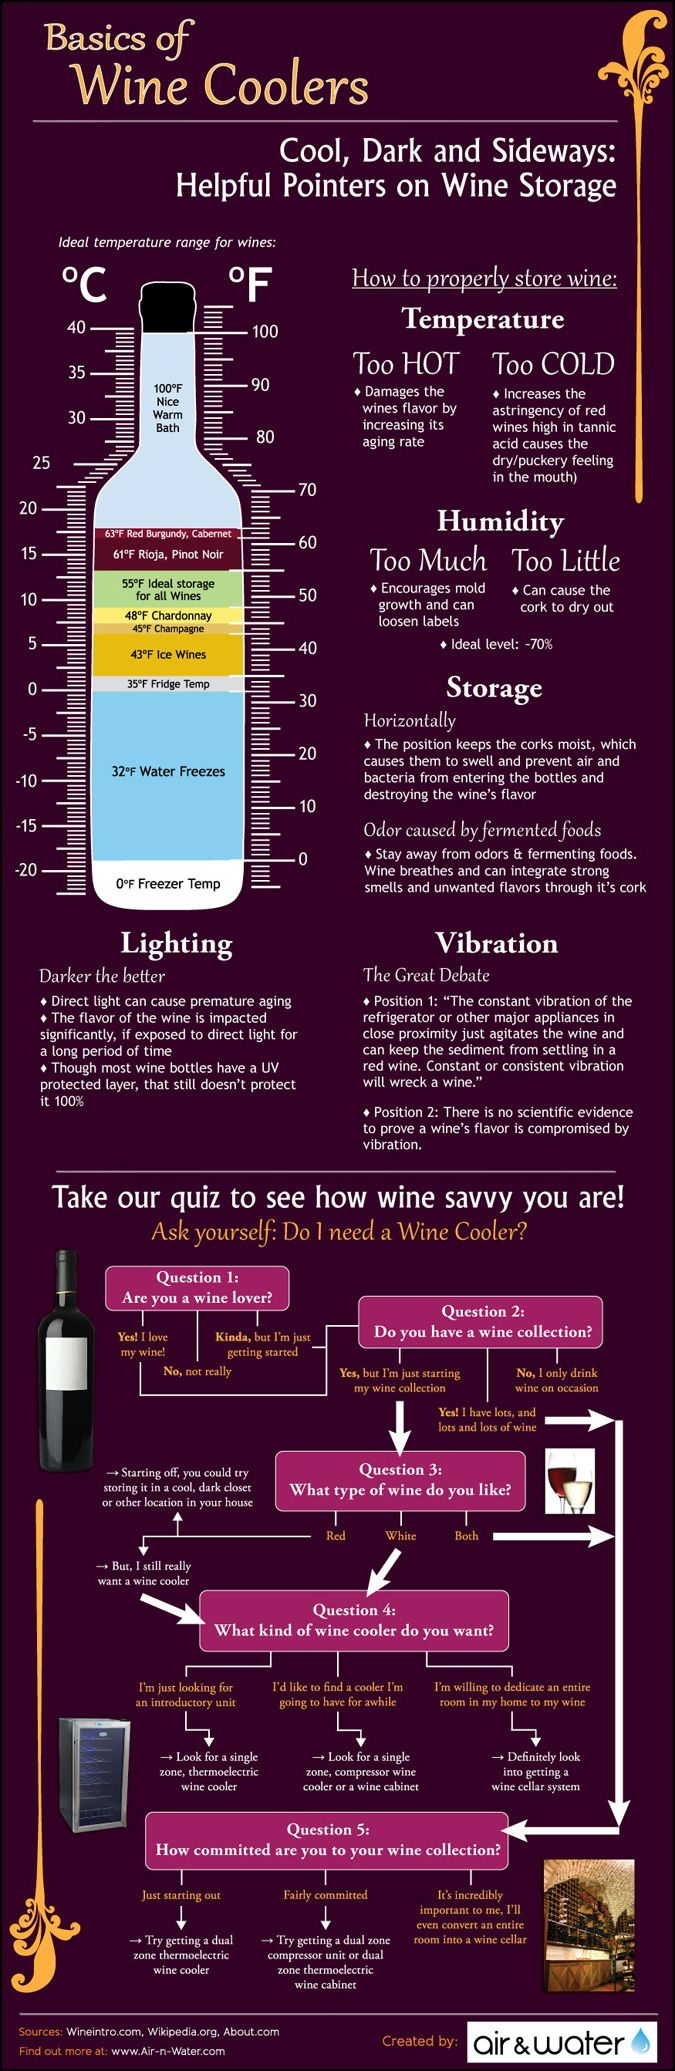 """Cool, dark and Sideways"" Infographic on wine storage conditions to protect any bottles you might want to hang onto for a while."